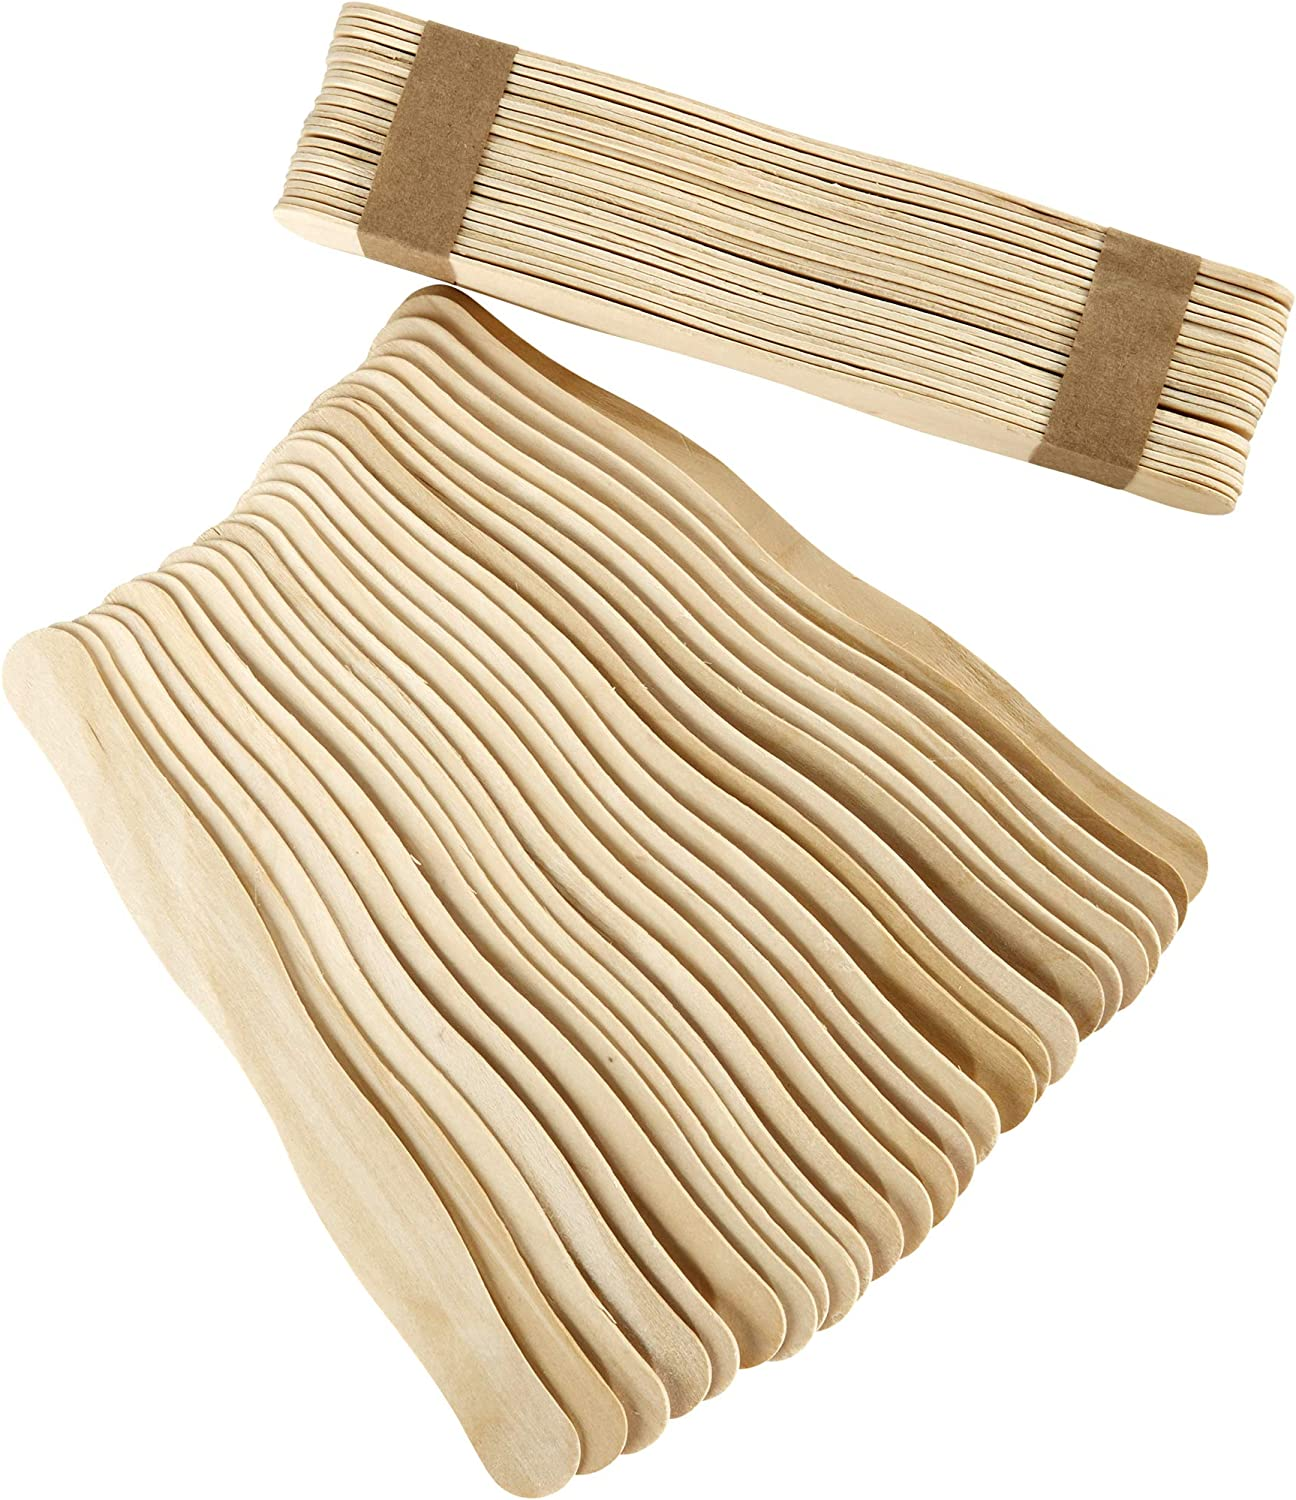 Artlicious - 100 Unfinished Natural Wood Wavy Popsicle Craft Sticks, 8 inch Long, Great for Paint Sticks, Tongue Depressors (100 Wavy Sticks)